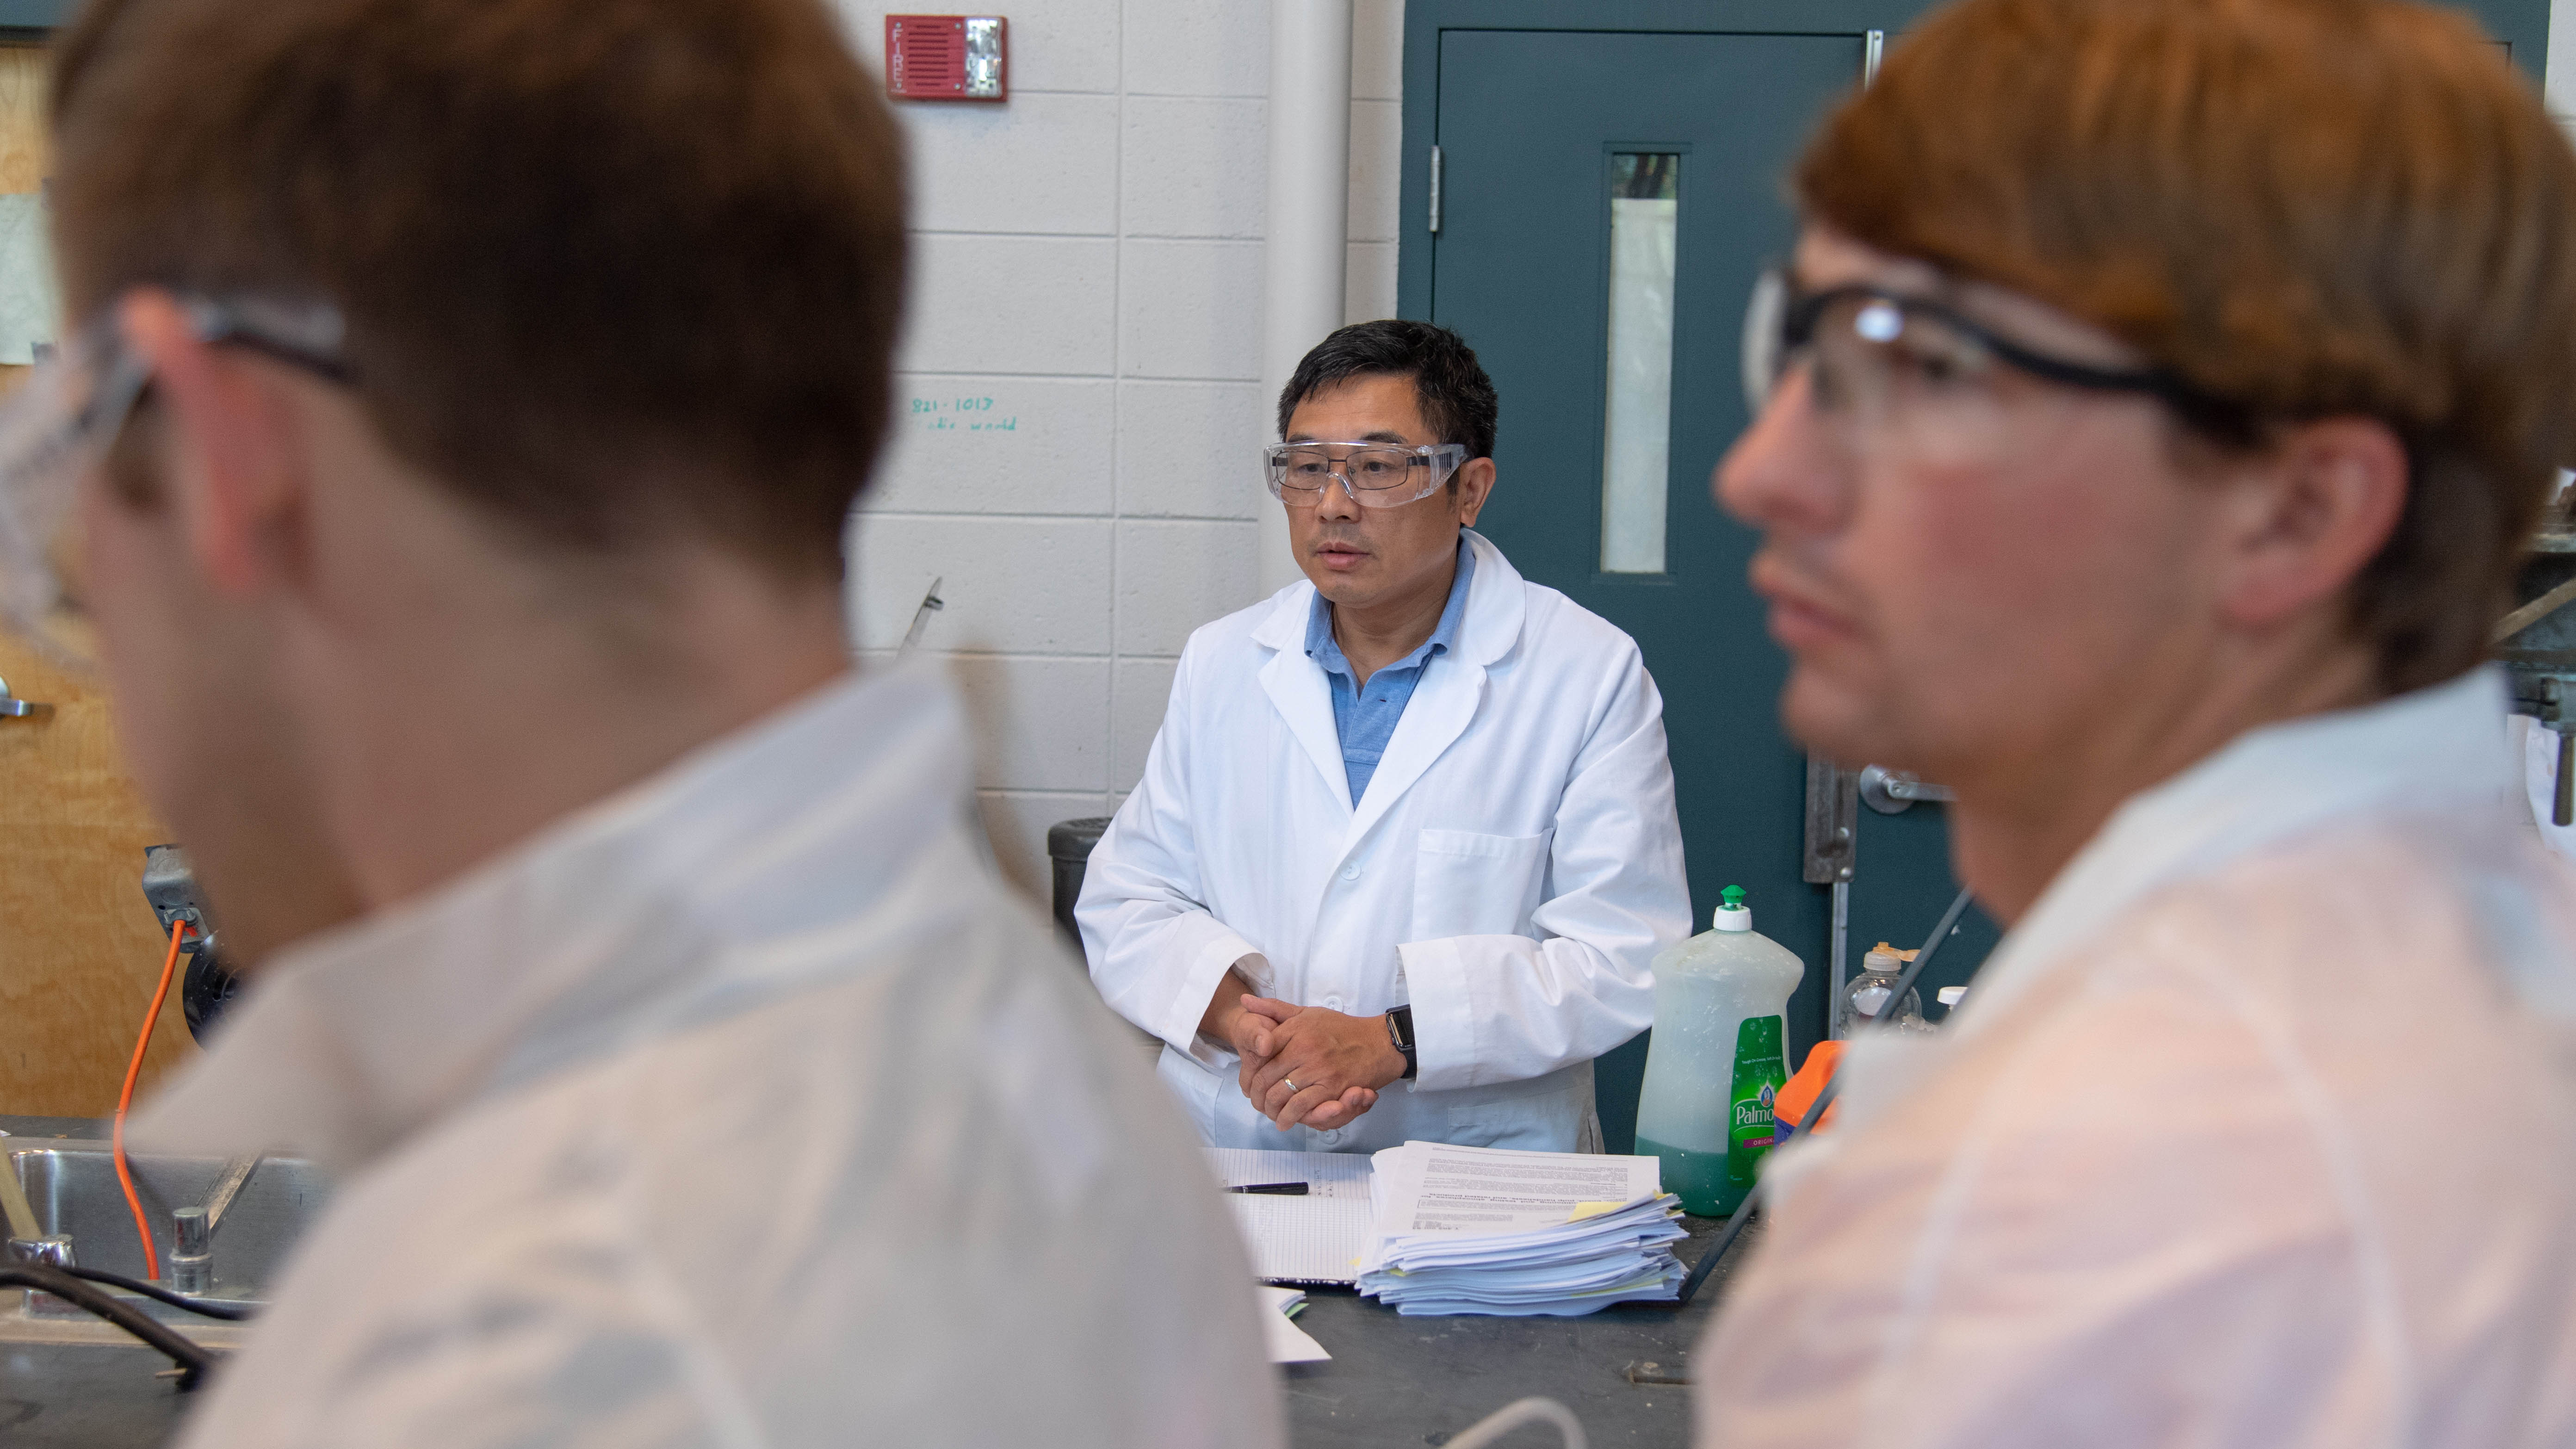 APPF Director Zhihua Jiang, assistant professor of chemical engineering in the Samuel Ginn College of Engineering, oversees students in the lab.